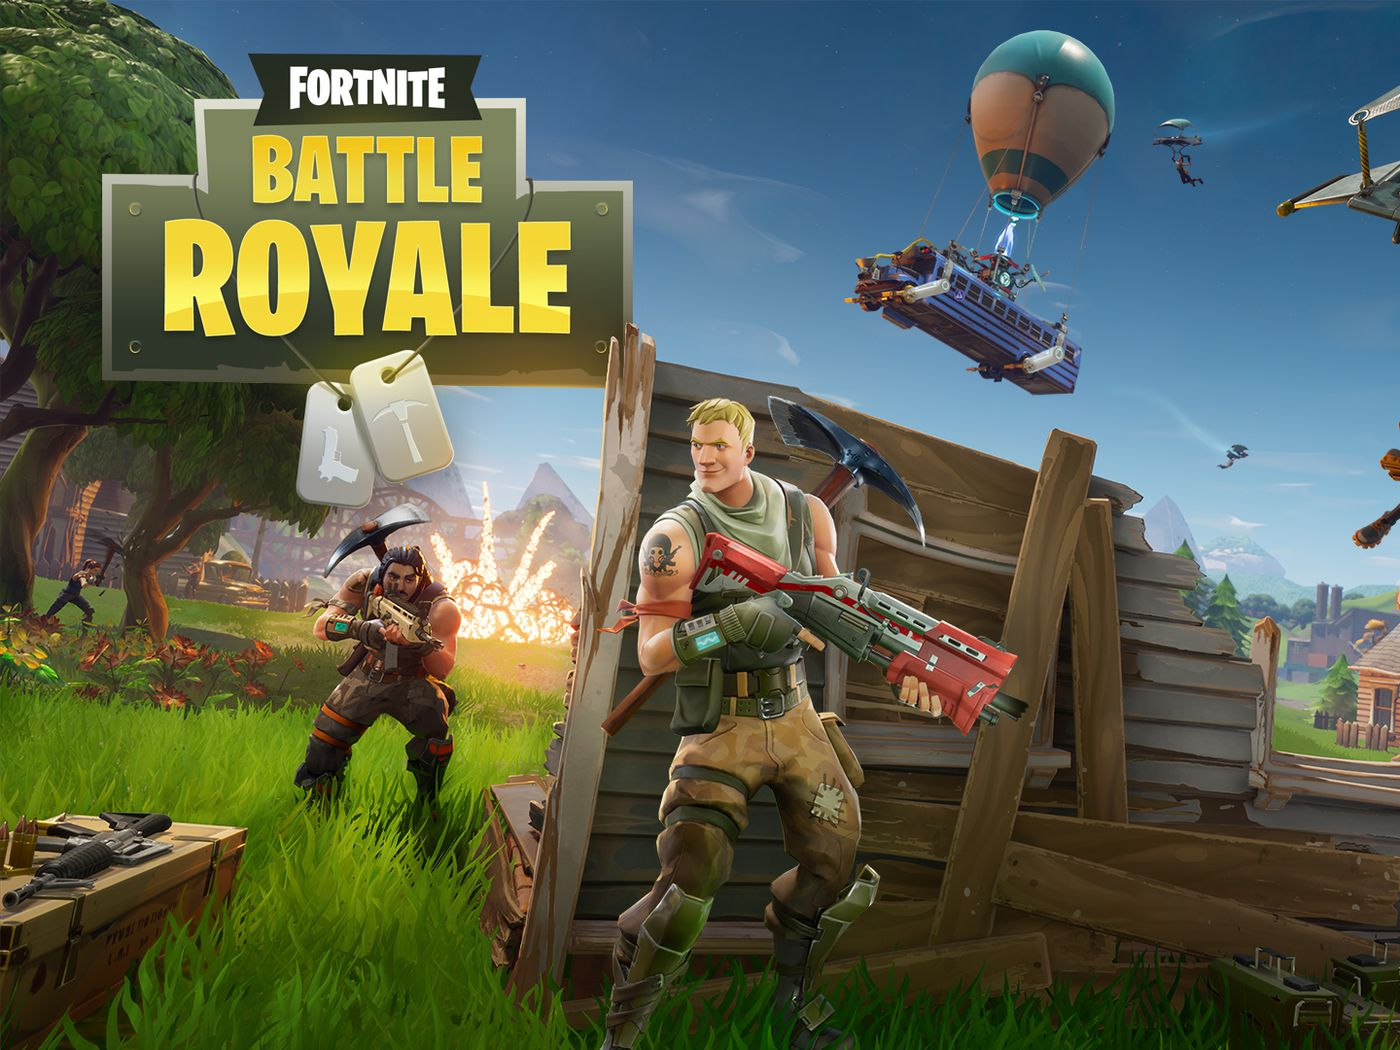 Fortnite generated a record $318 million in revenue in May - Vox